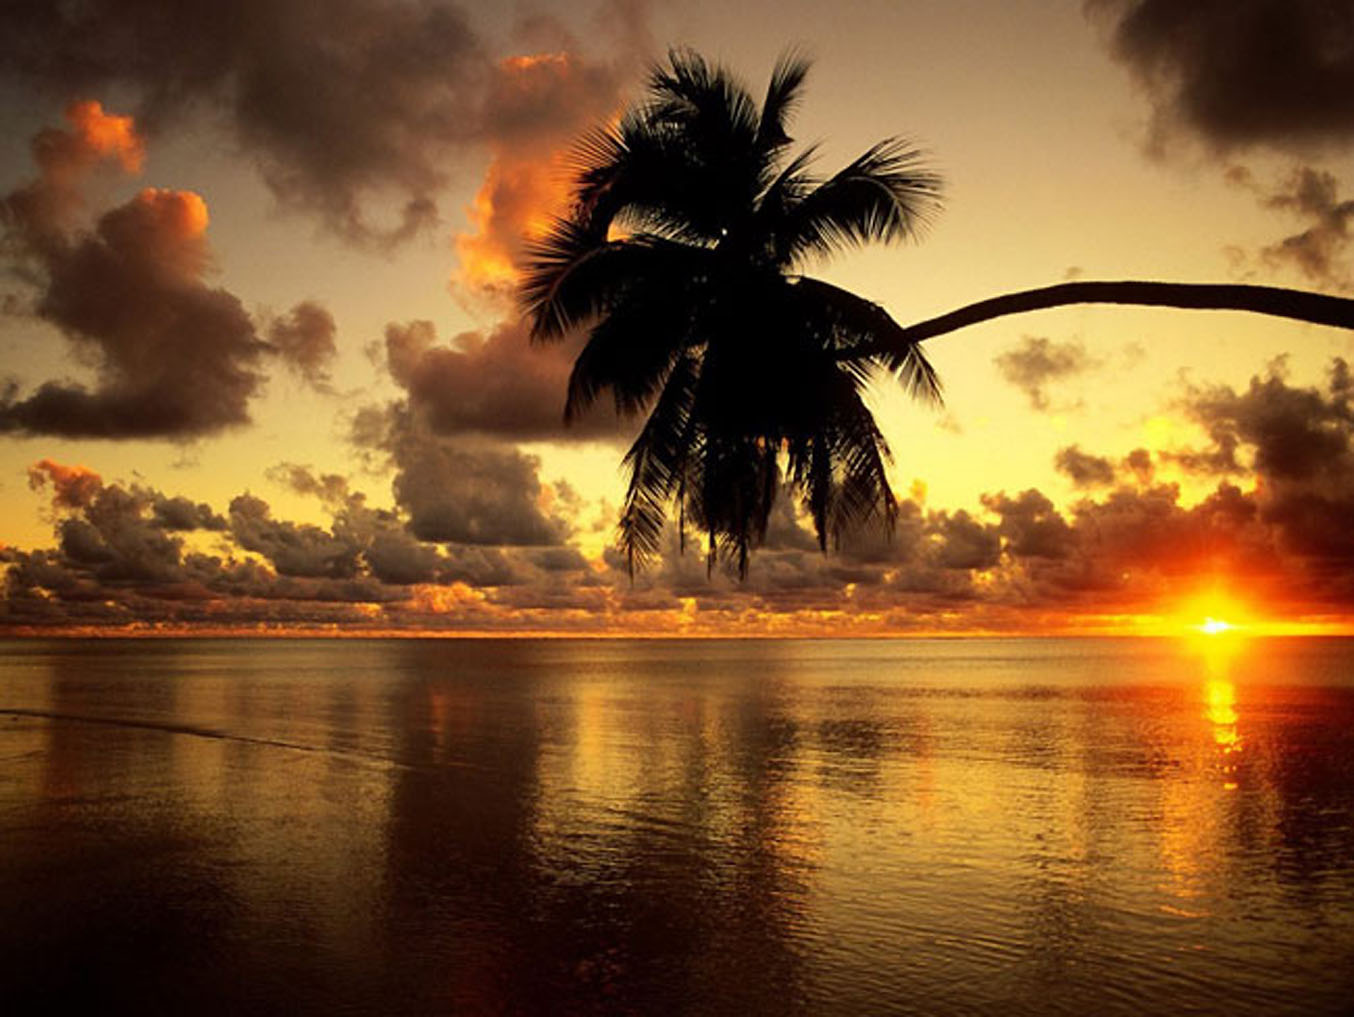 Tropical Island Sunset: Srilankan Natural Sites And Tuorrism